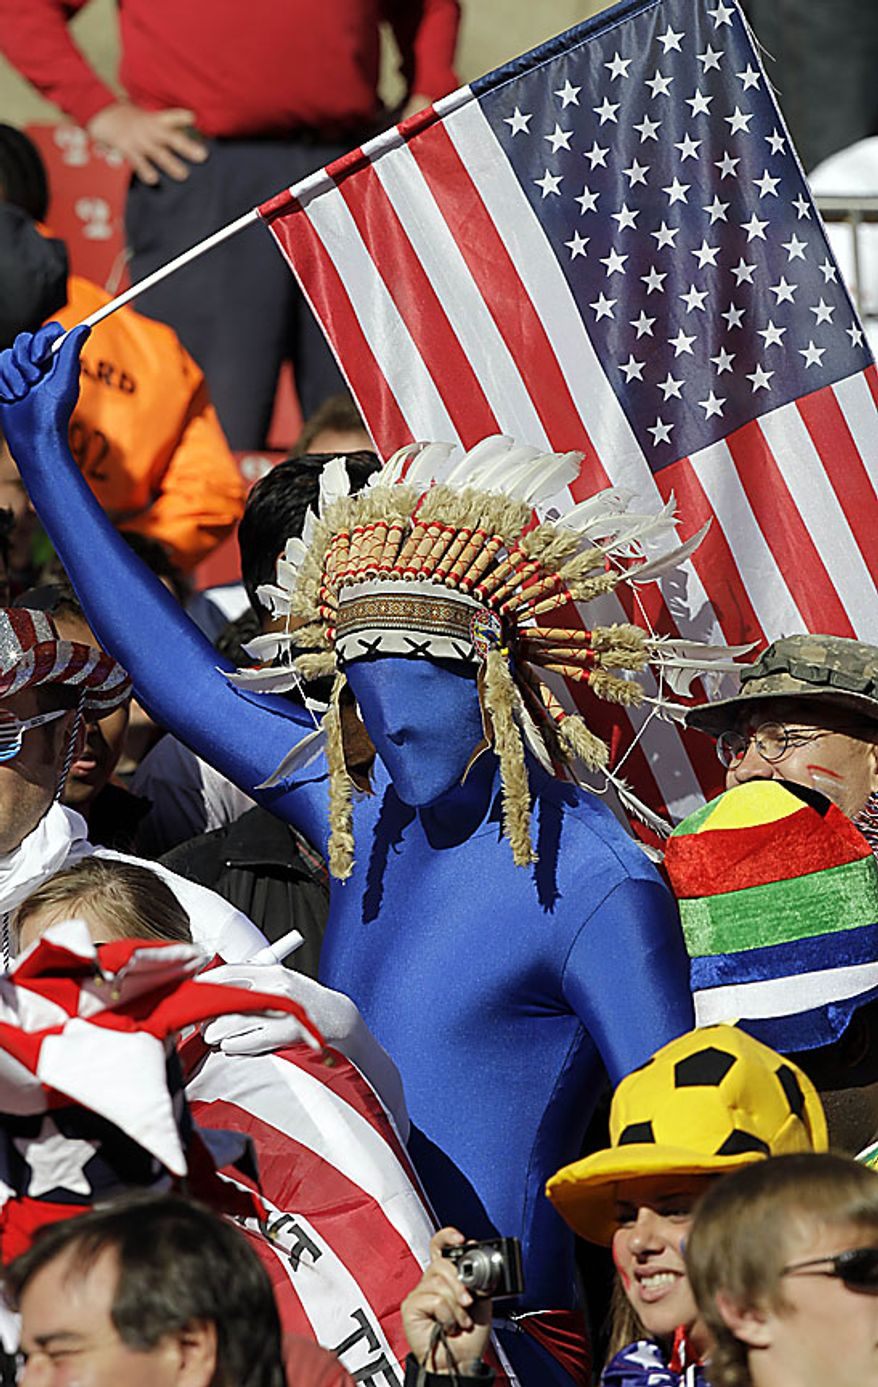 United States' fans cheer during the World Cup group C soccer match between Slovenia and the United States at Ellis Park Stadium in Johannesburg, South Africa, Friday, June 18, 2010.  (AP Photo/Rob Griffith)